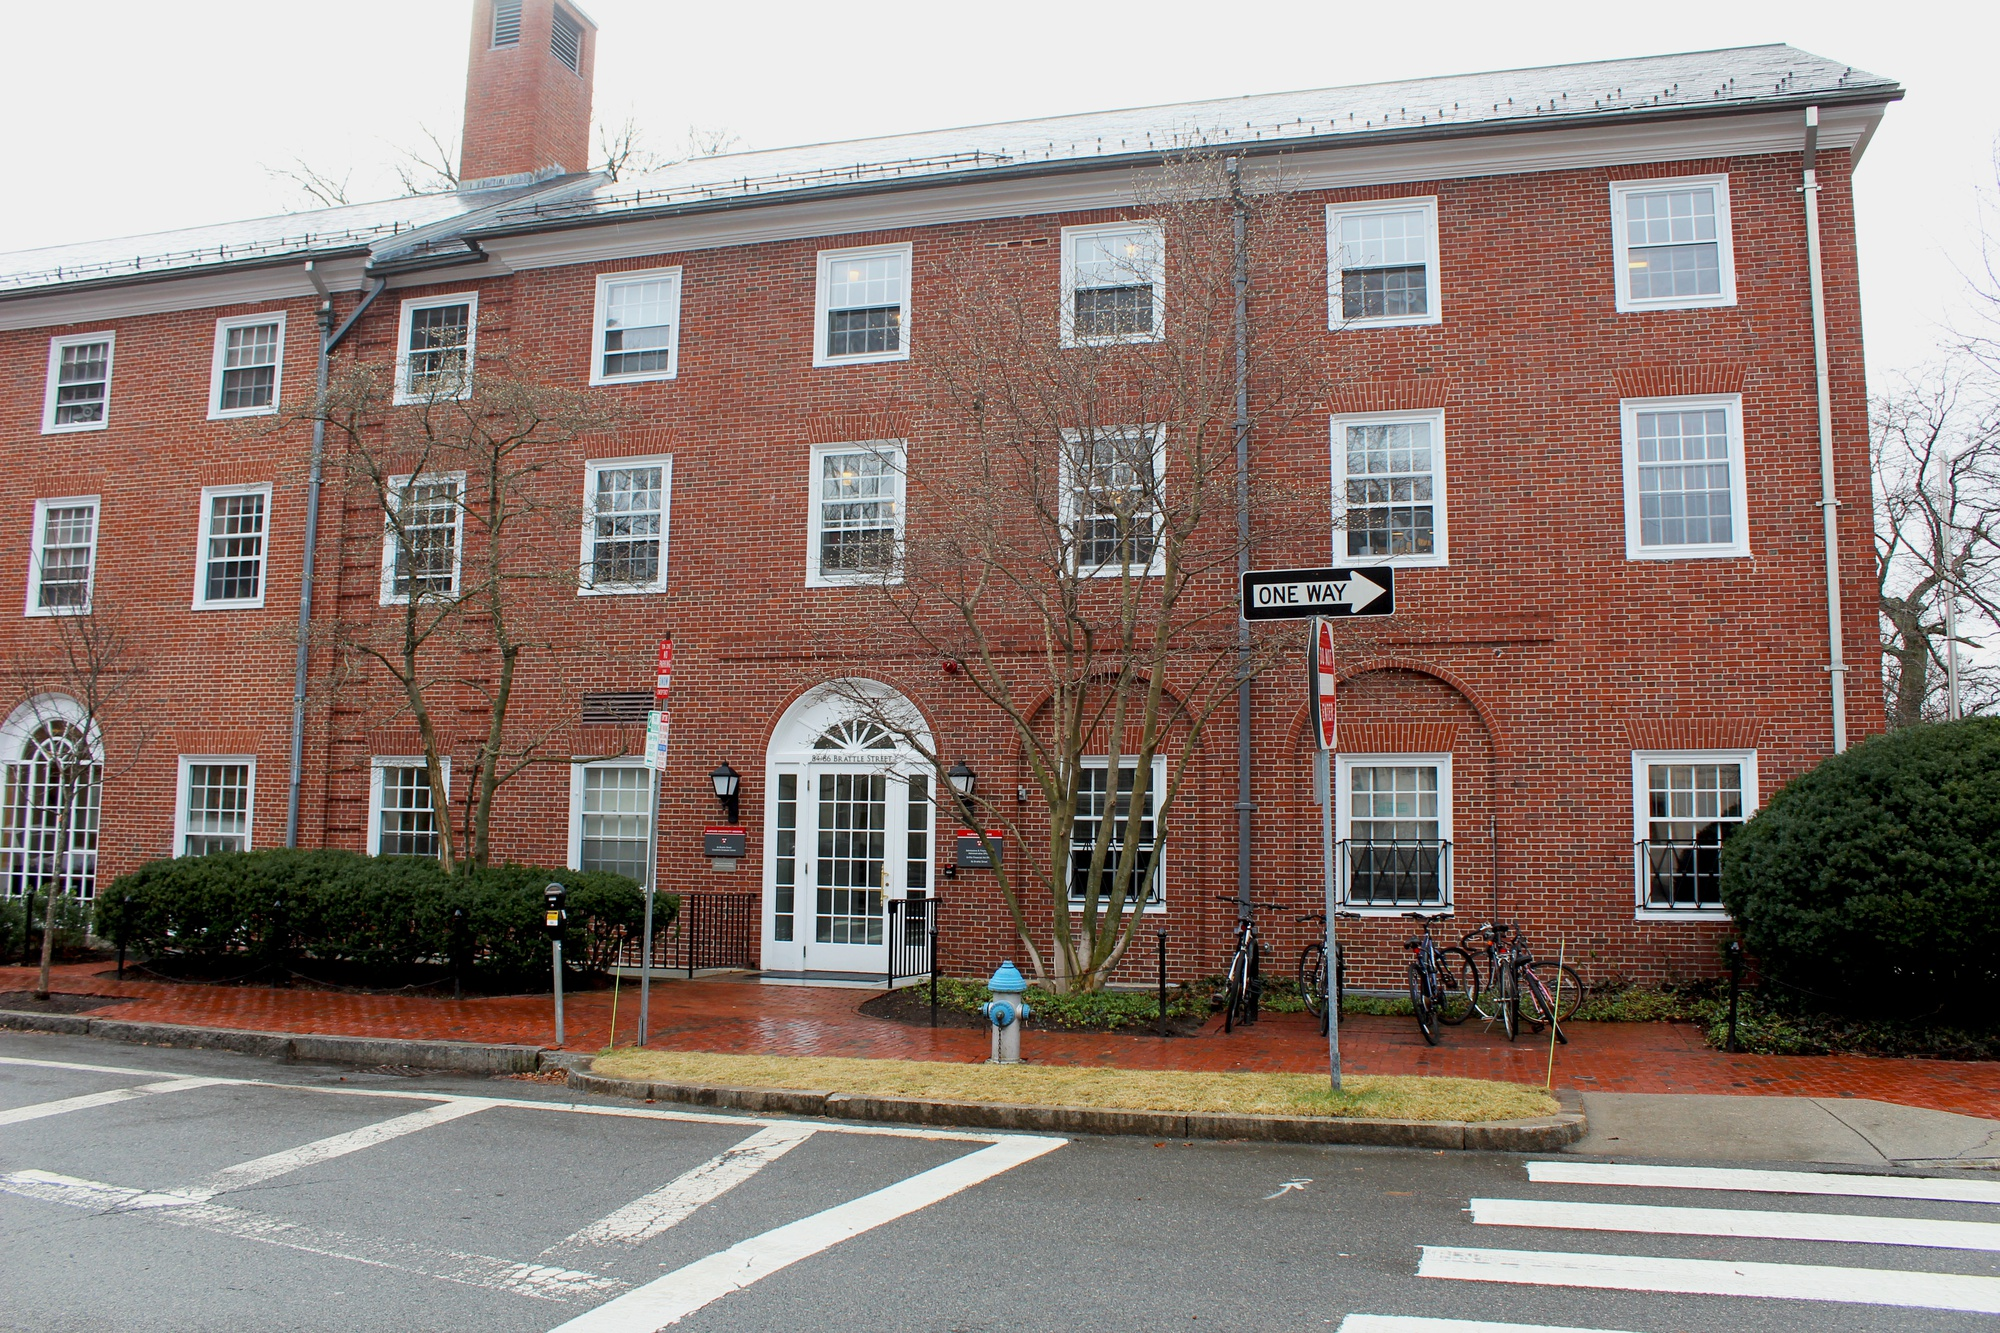 The Harvard College Office of Admissions and Financial Aid is at 86 Brattle St.